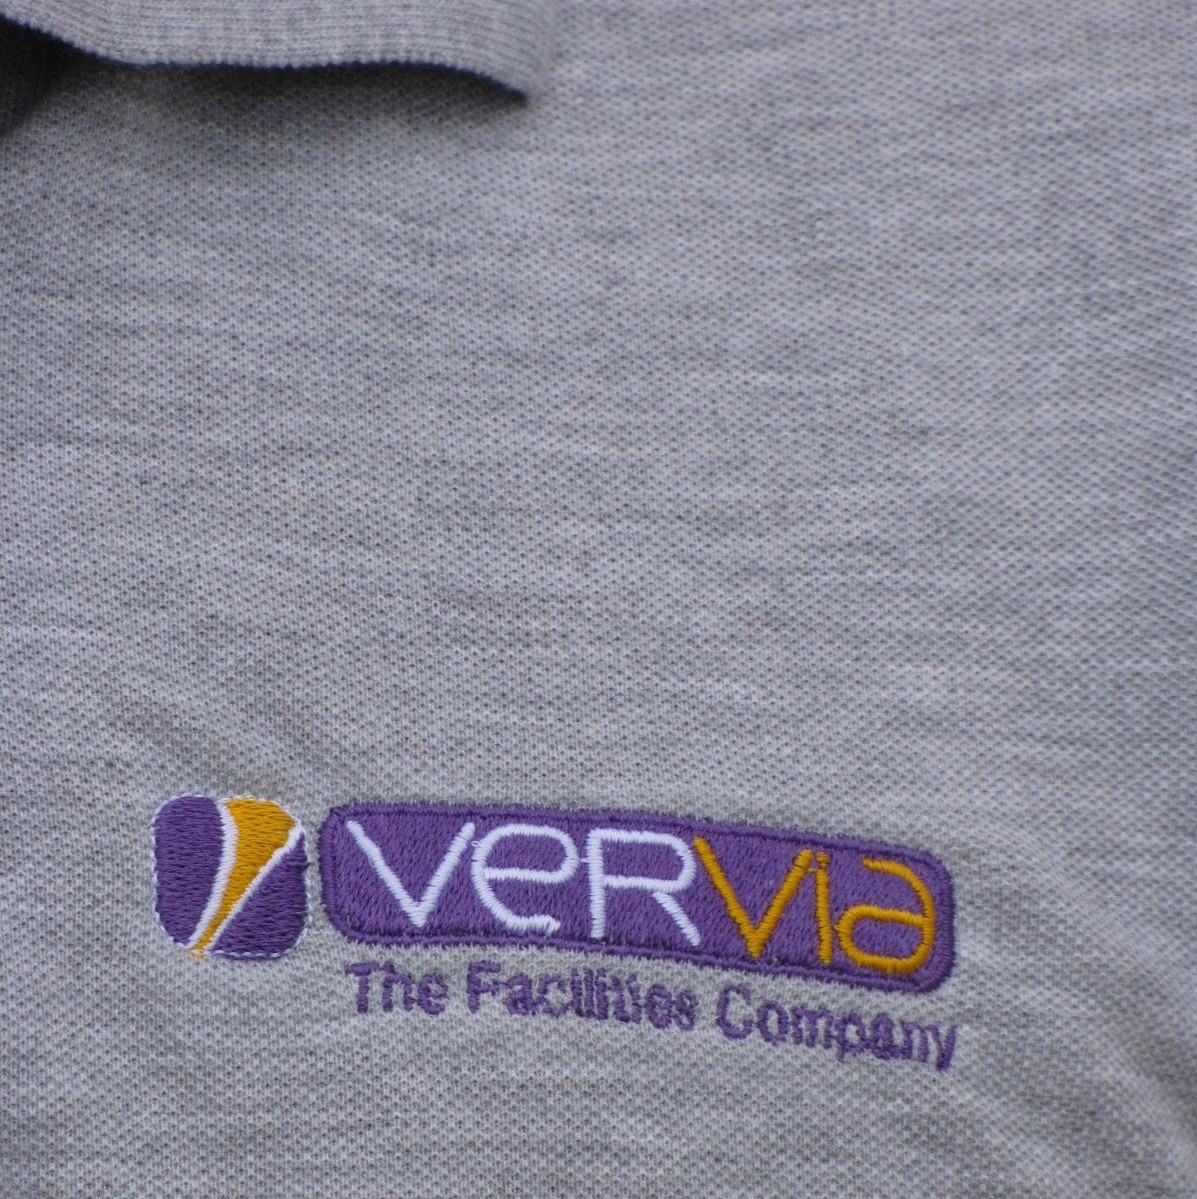 Vervia cleaning logo on shirt